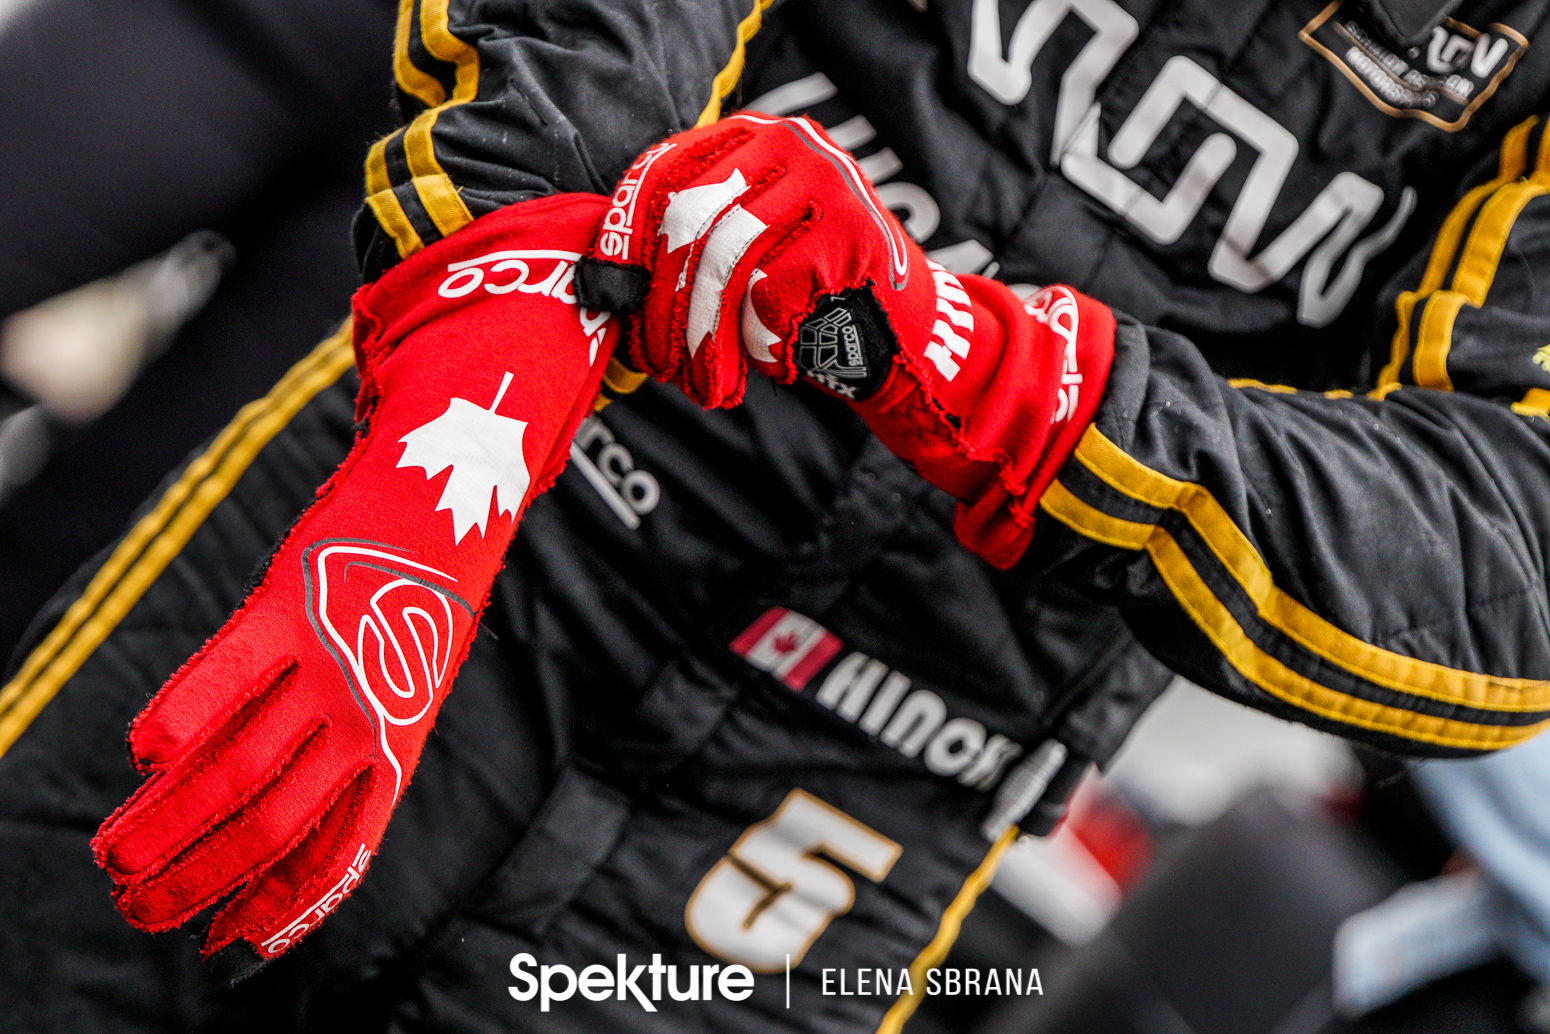 Earchphoto Sports - James Hinchcliffe gets ready for the last row shootout